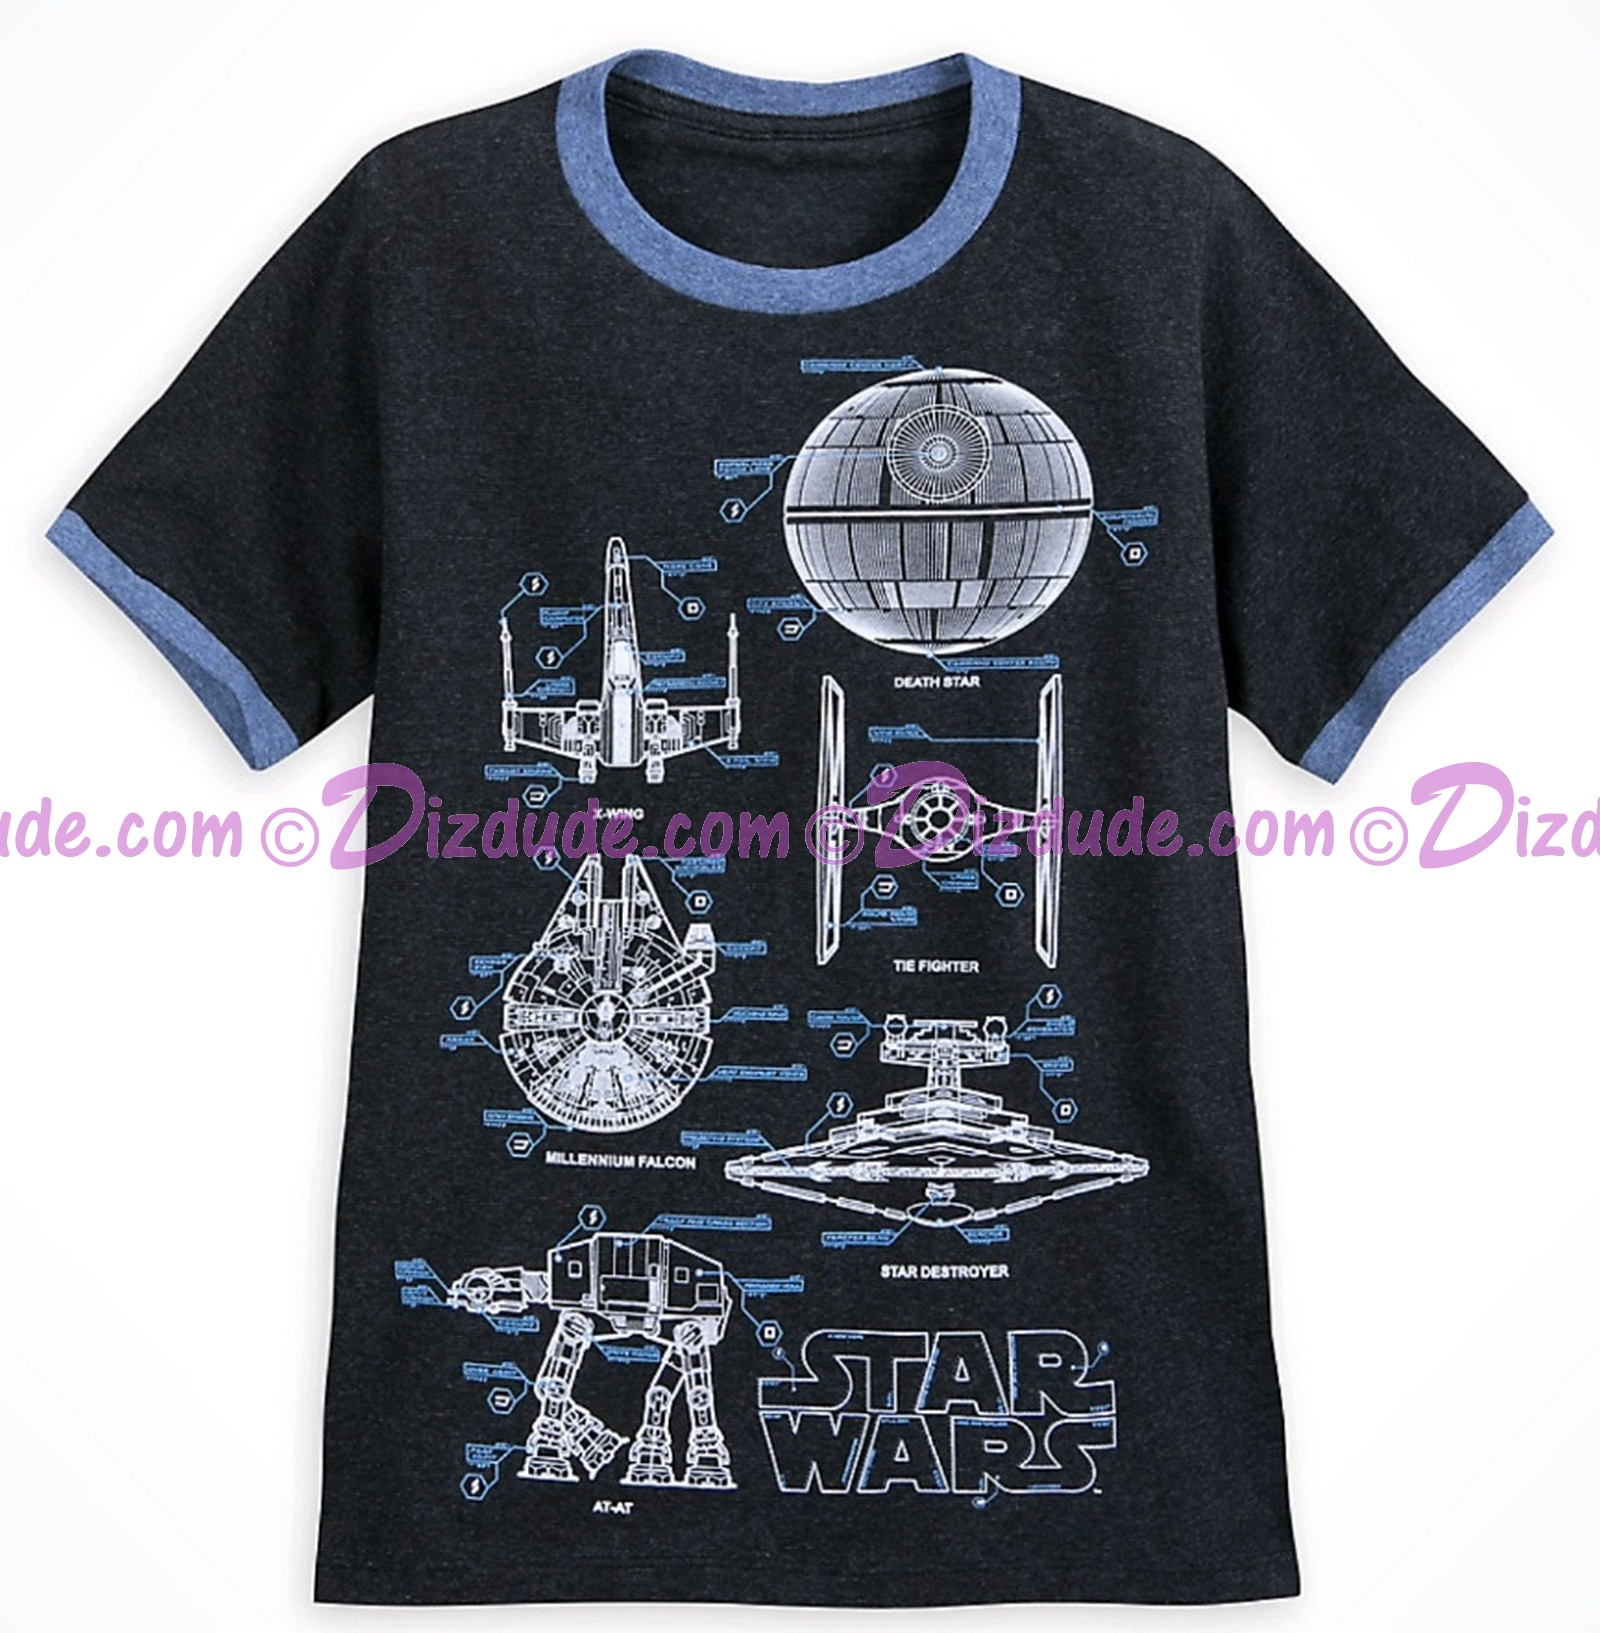 Disney Star Wars Youth Blueprint Ringer T-Shirt (Tshirt, T shirt or Tee) © Dizdude.com